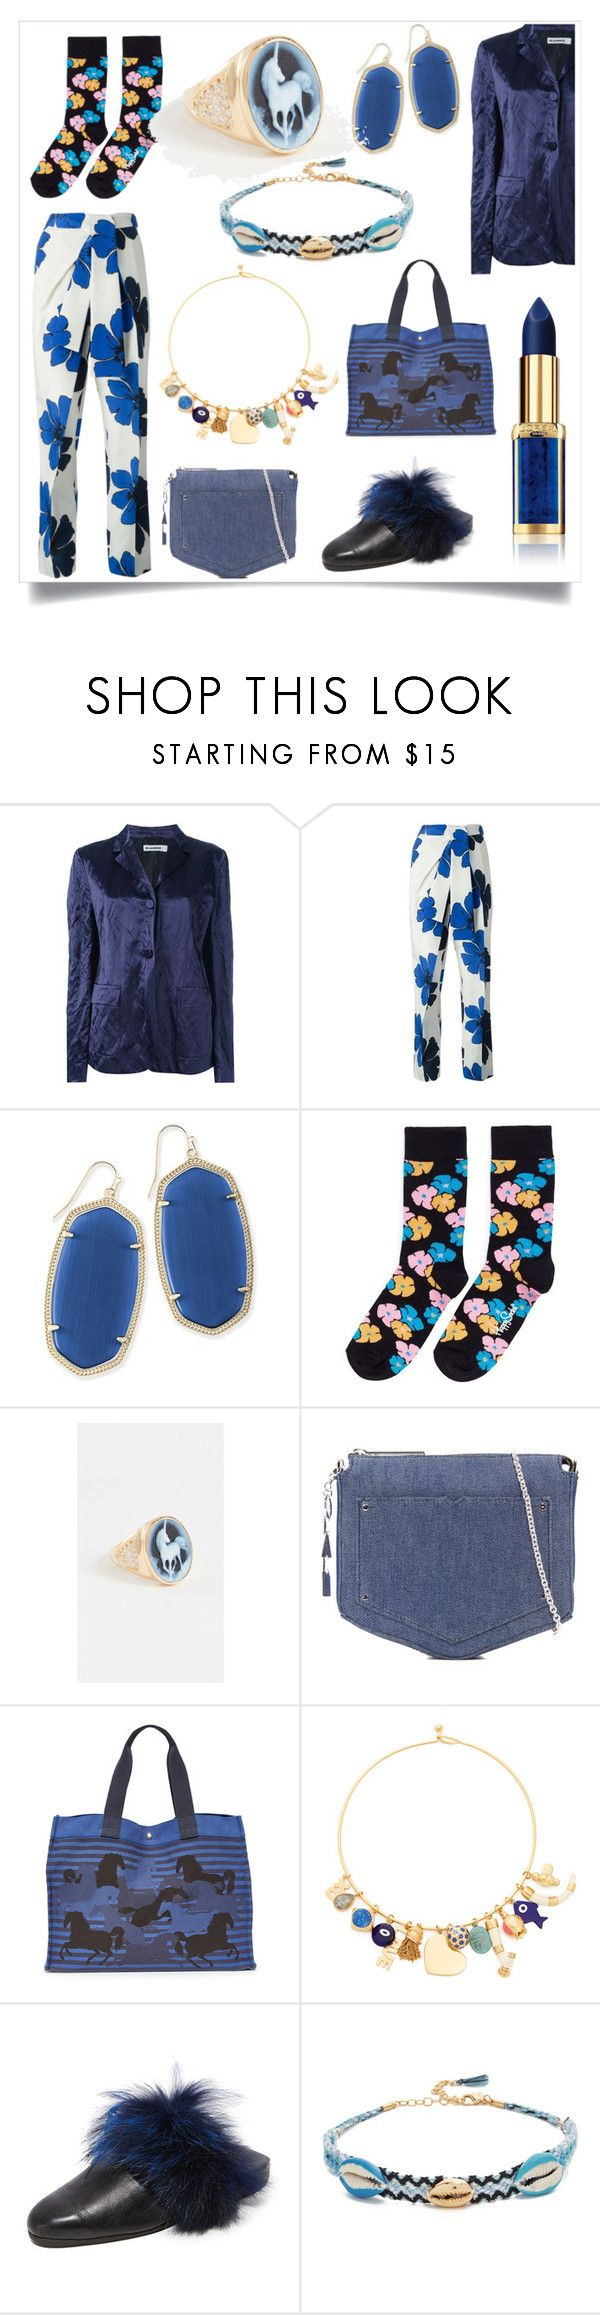 """""""Fashion and beauty"""" by emmamegan-5678 ❤ liked on Polyvore featuring Jil Sander, Kendra Scott, Happy Socks, Jacquie Aiche, Eddie Borgo, Tory Burch, Parme Marin, Rebecca Minkoff and modern"""